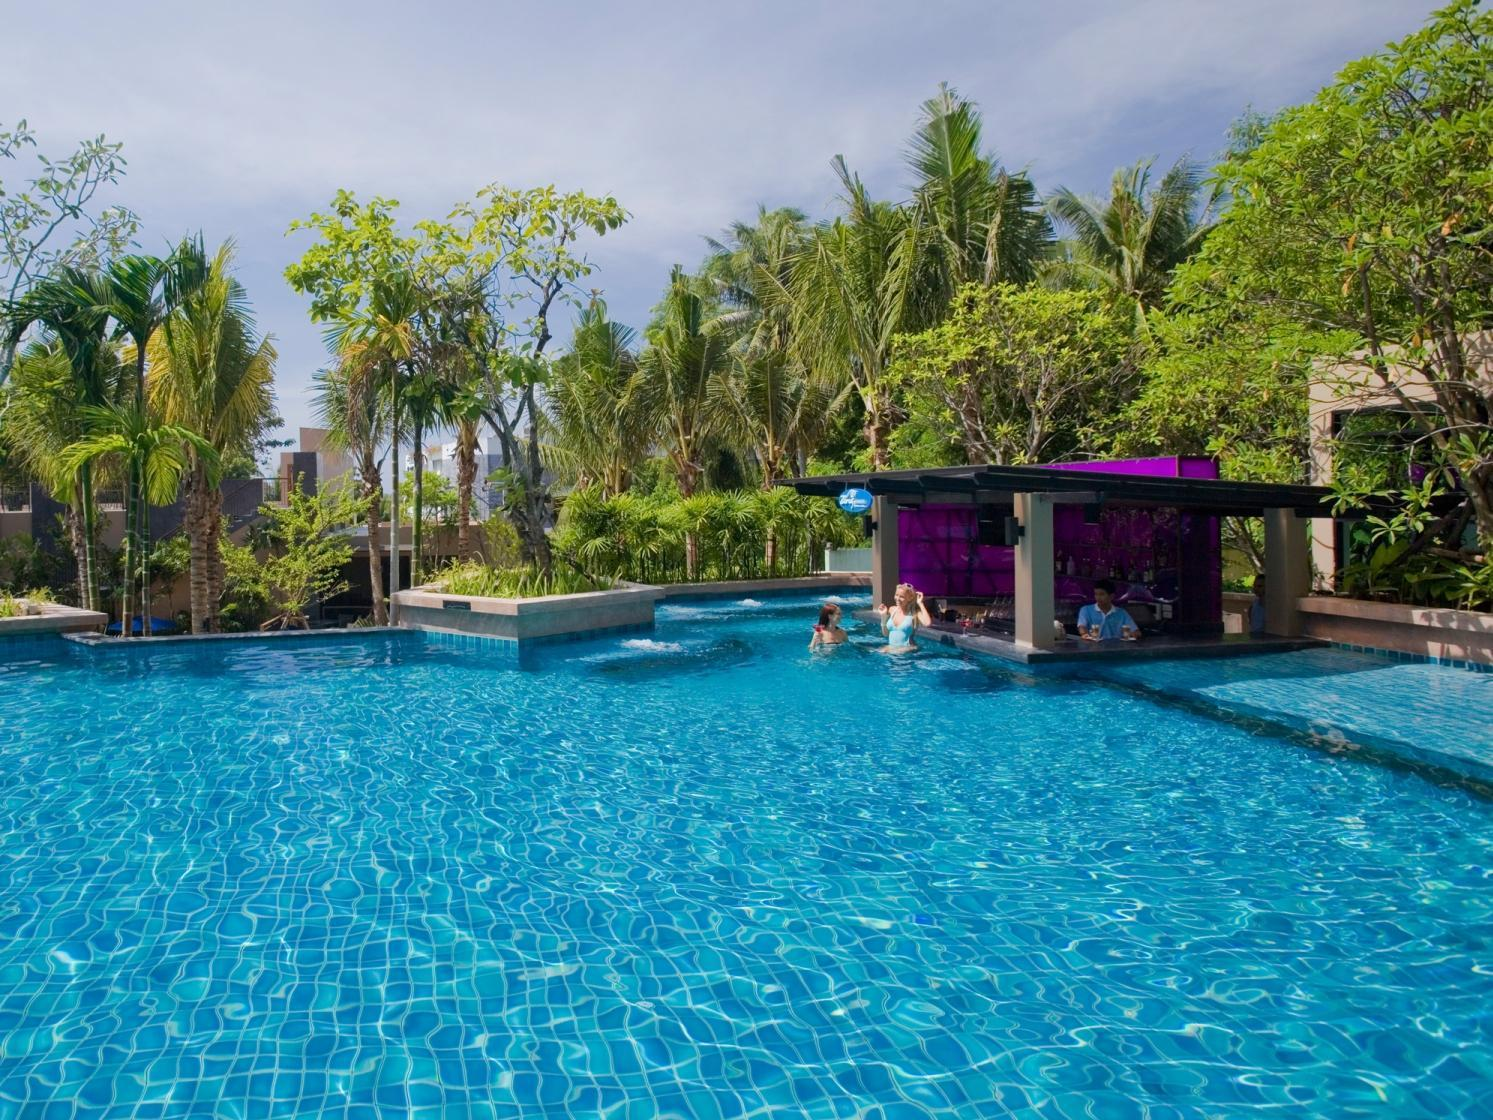 Avista Phuket Resort & Spa, Kata Beach Phuket - Avista Resort & Spa, Kata - Phuket